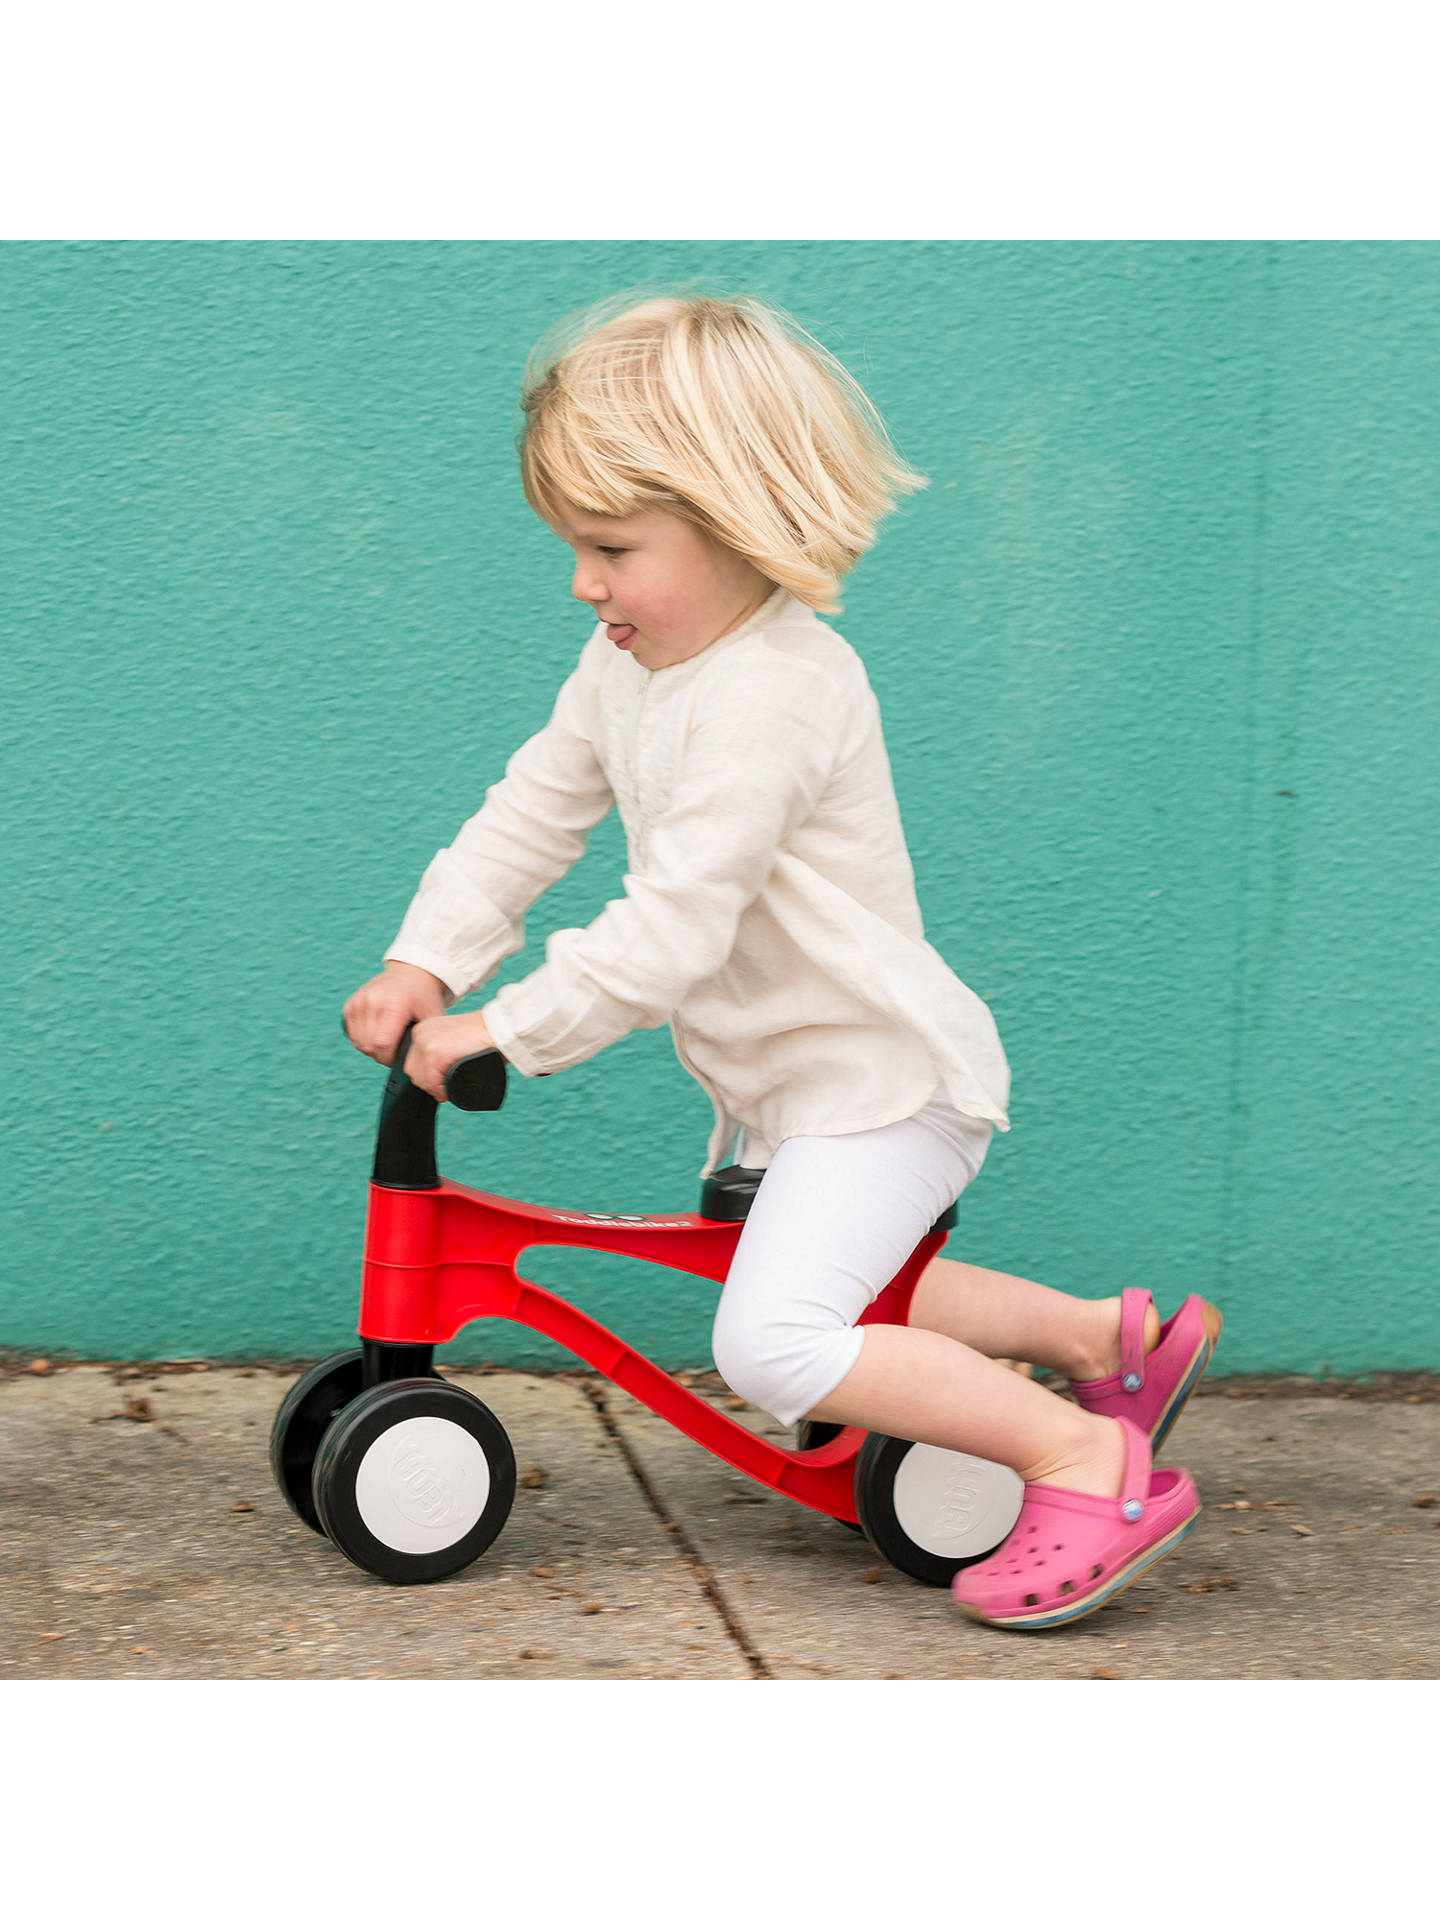 Buy Toddlebike 2 Pre-Balance Bike, Red Online at johnlewis.com